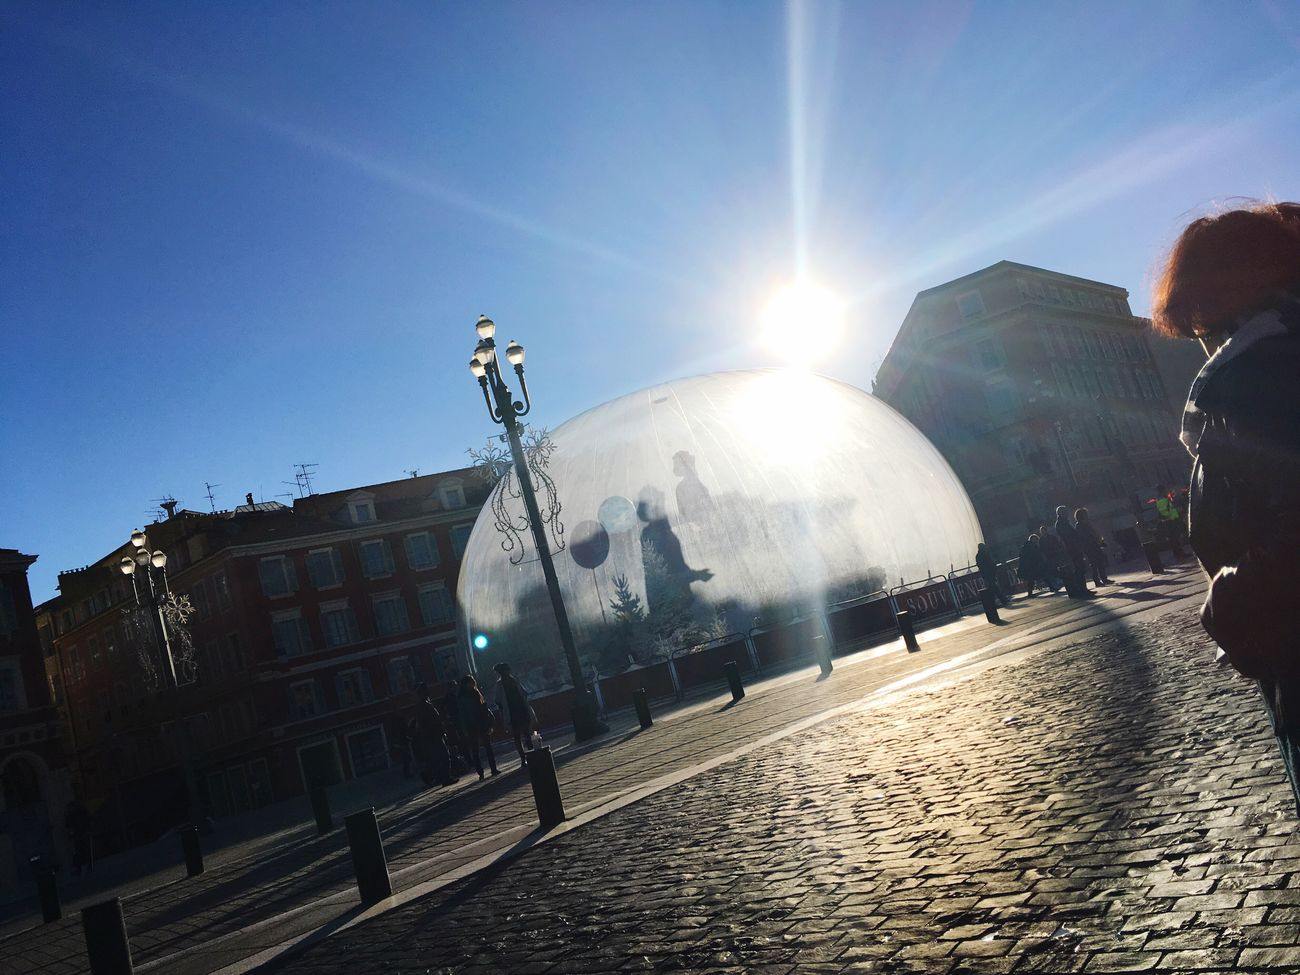 Sunlight Sun Lens Flare Sunbeam Sky Real People Outdoors Transportation Men Day Clear Sky One Person Architecture Adults Only Adult People